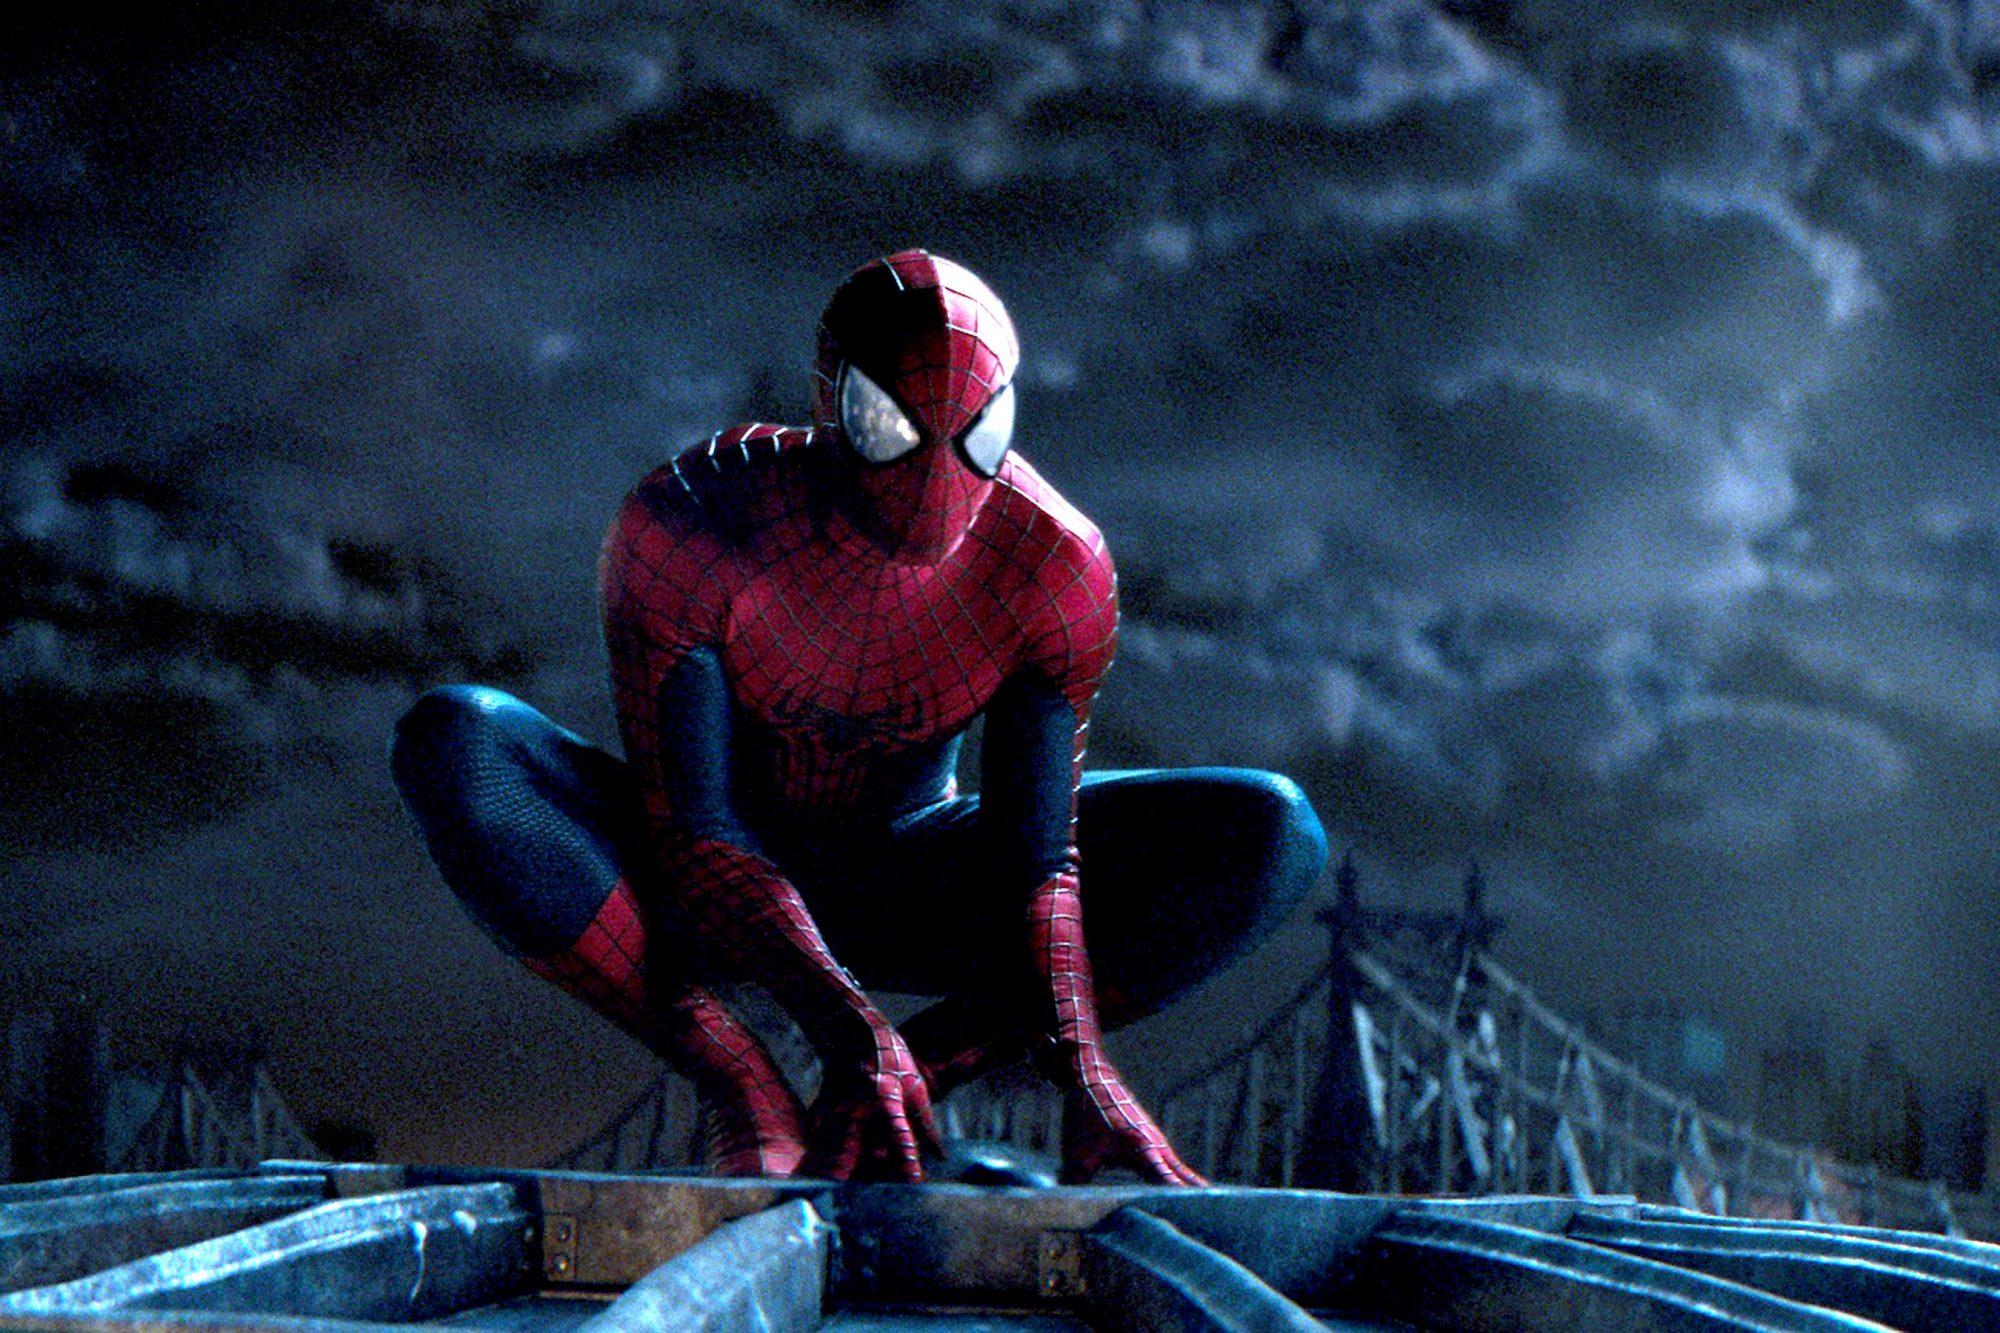 THE AMAZING SPIDER-MAN 2, Andrew Garfield, 2014. /©Columbia Pictures/courtesy Everett Collection